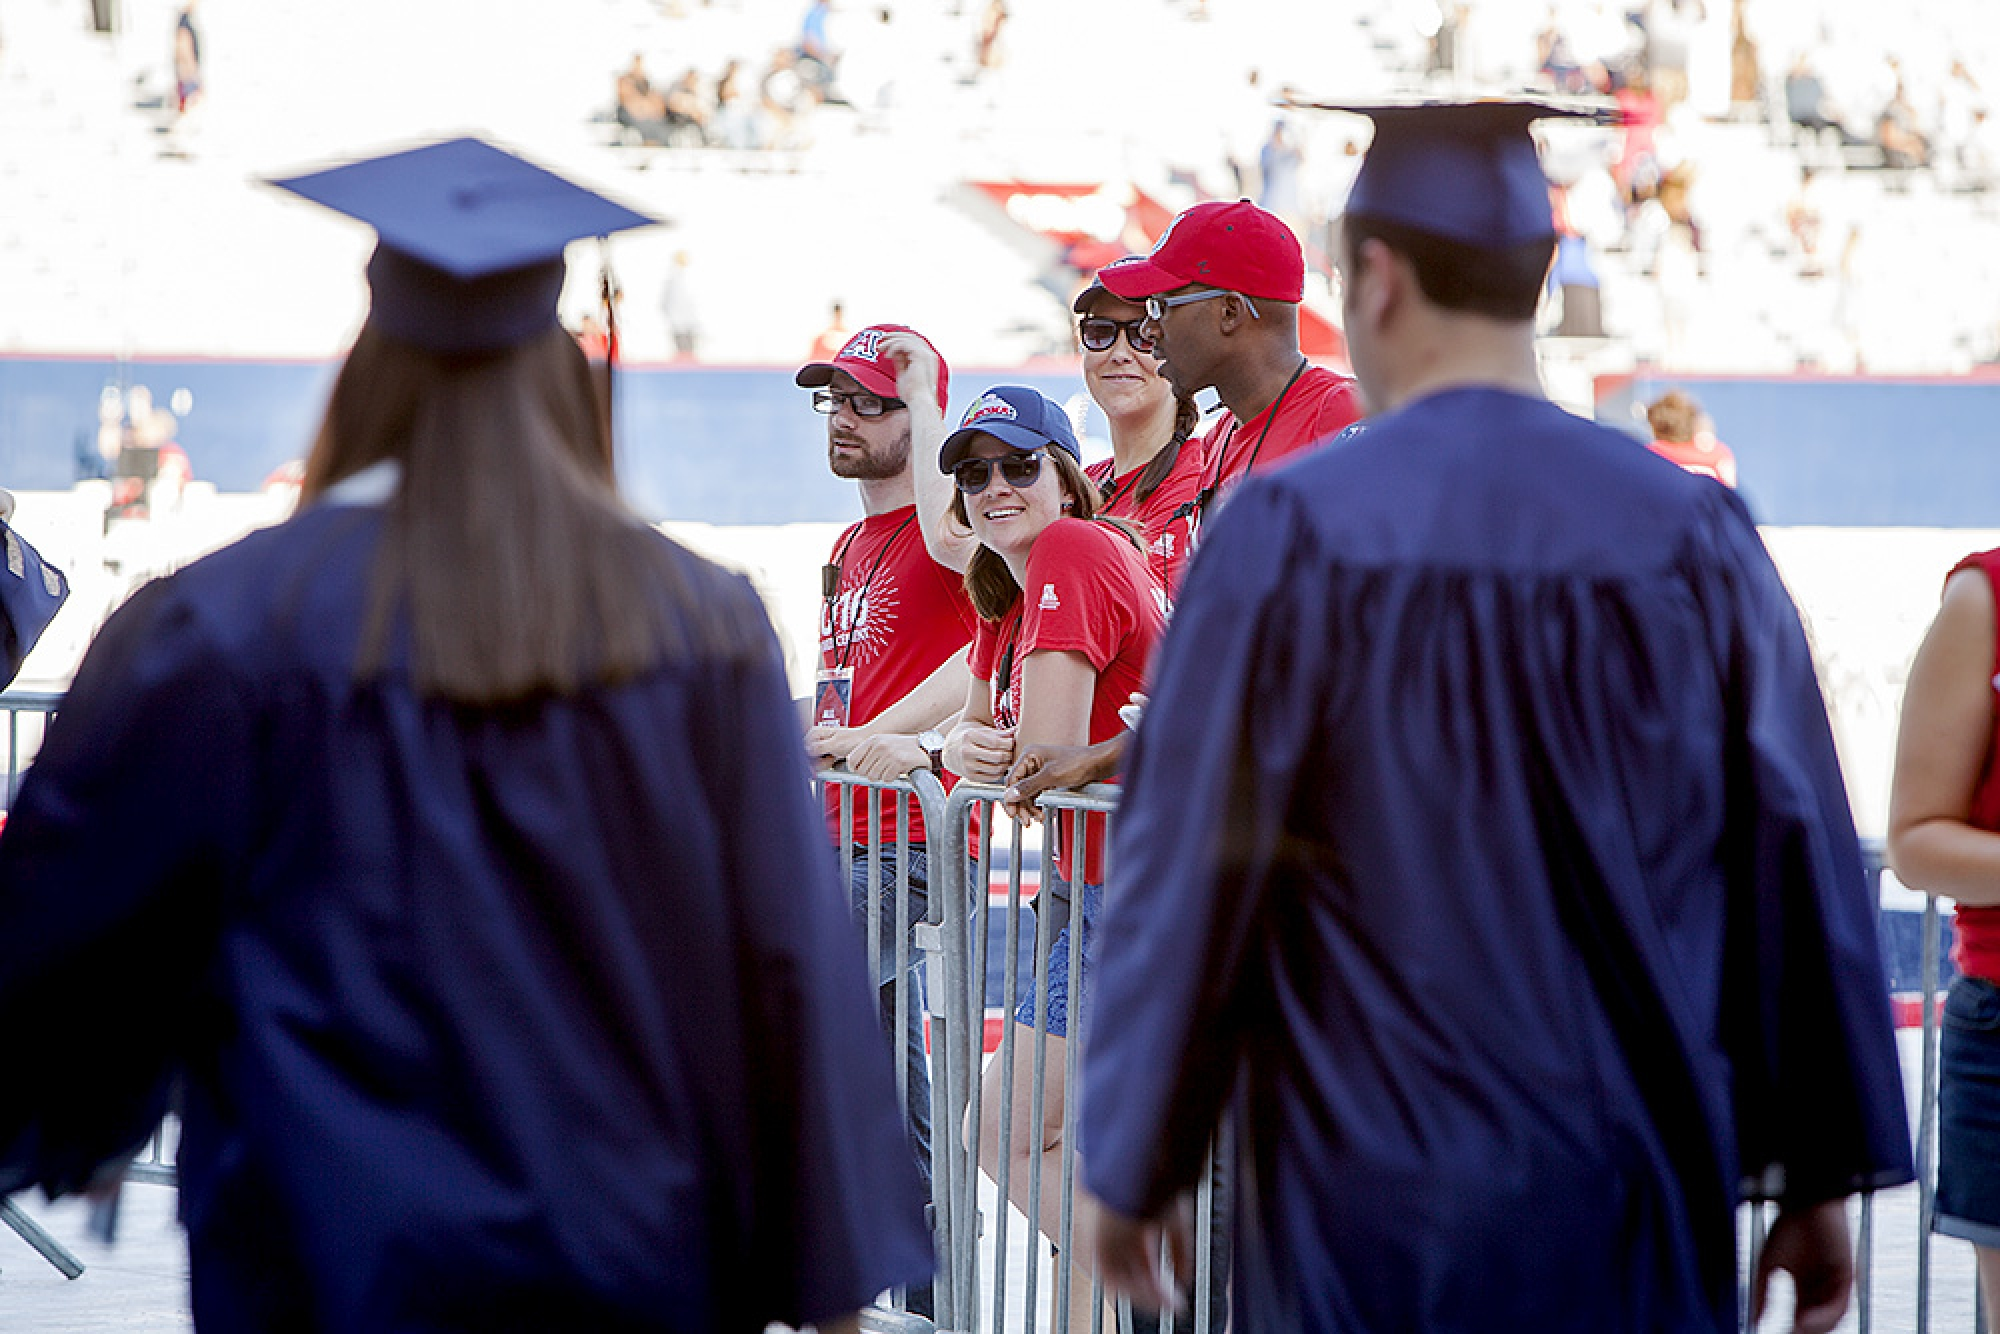 More than 300 volunteers worked Commencement, including these who greeted students as they entered the stadium.